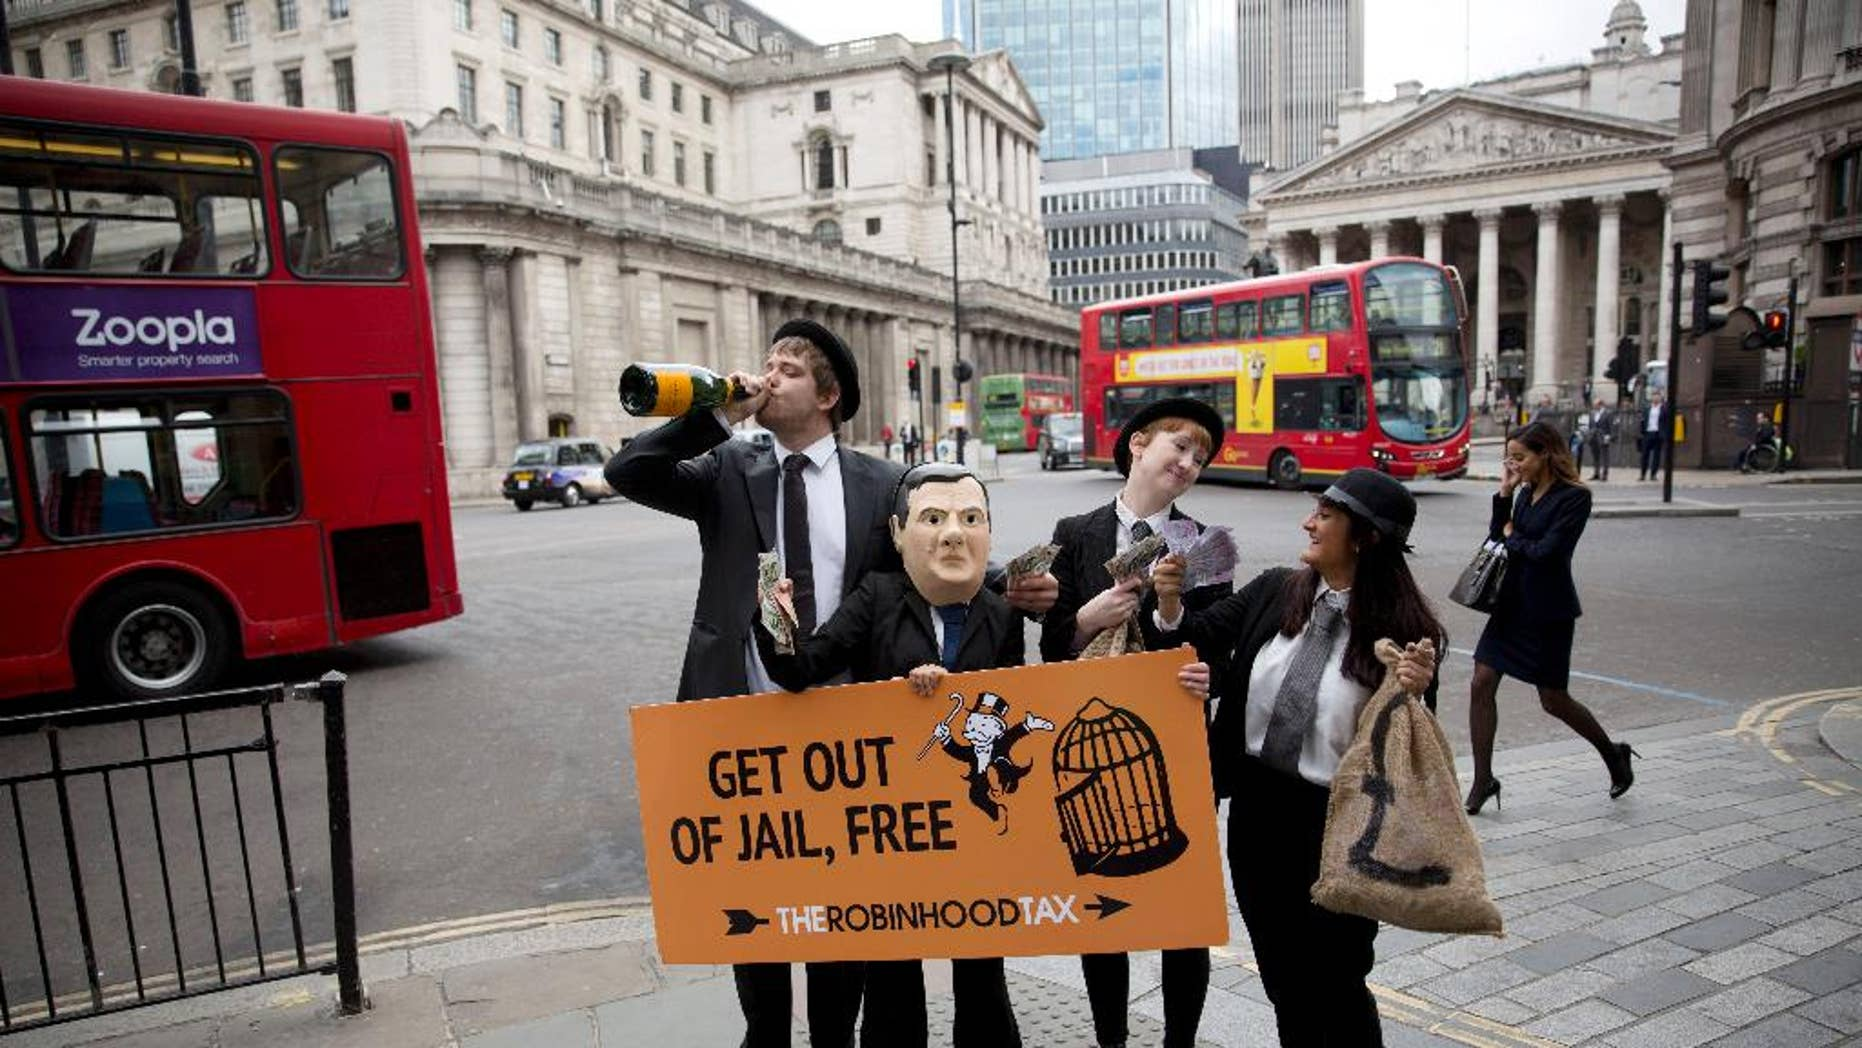 Campaigners from the Robin Hood Tax organization dressed as bankers, including one wearing a mask representing British Chancellor of the Exchequer George Osborne, hold placards as they pose for the media outside Mansion House, backdropped by the Bank of England at left, in London, Wednesday, June 10, 2015. The group say their idea for a Robin Hood Tax is a tiny tax on the financial sector that could generate billions of pounds annually to fight poverty and climate change. The stunt was held by the group to coincide with Osborne's annual economic speech due to be held at Mansion House on Wednesday evening.  (AP Photo/Matt Dunham)